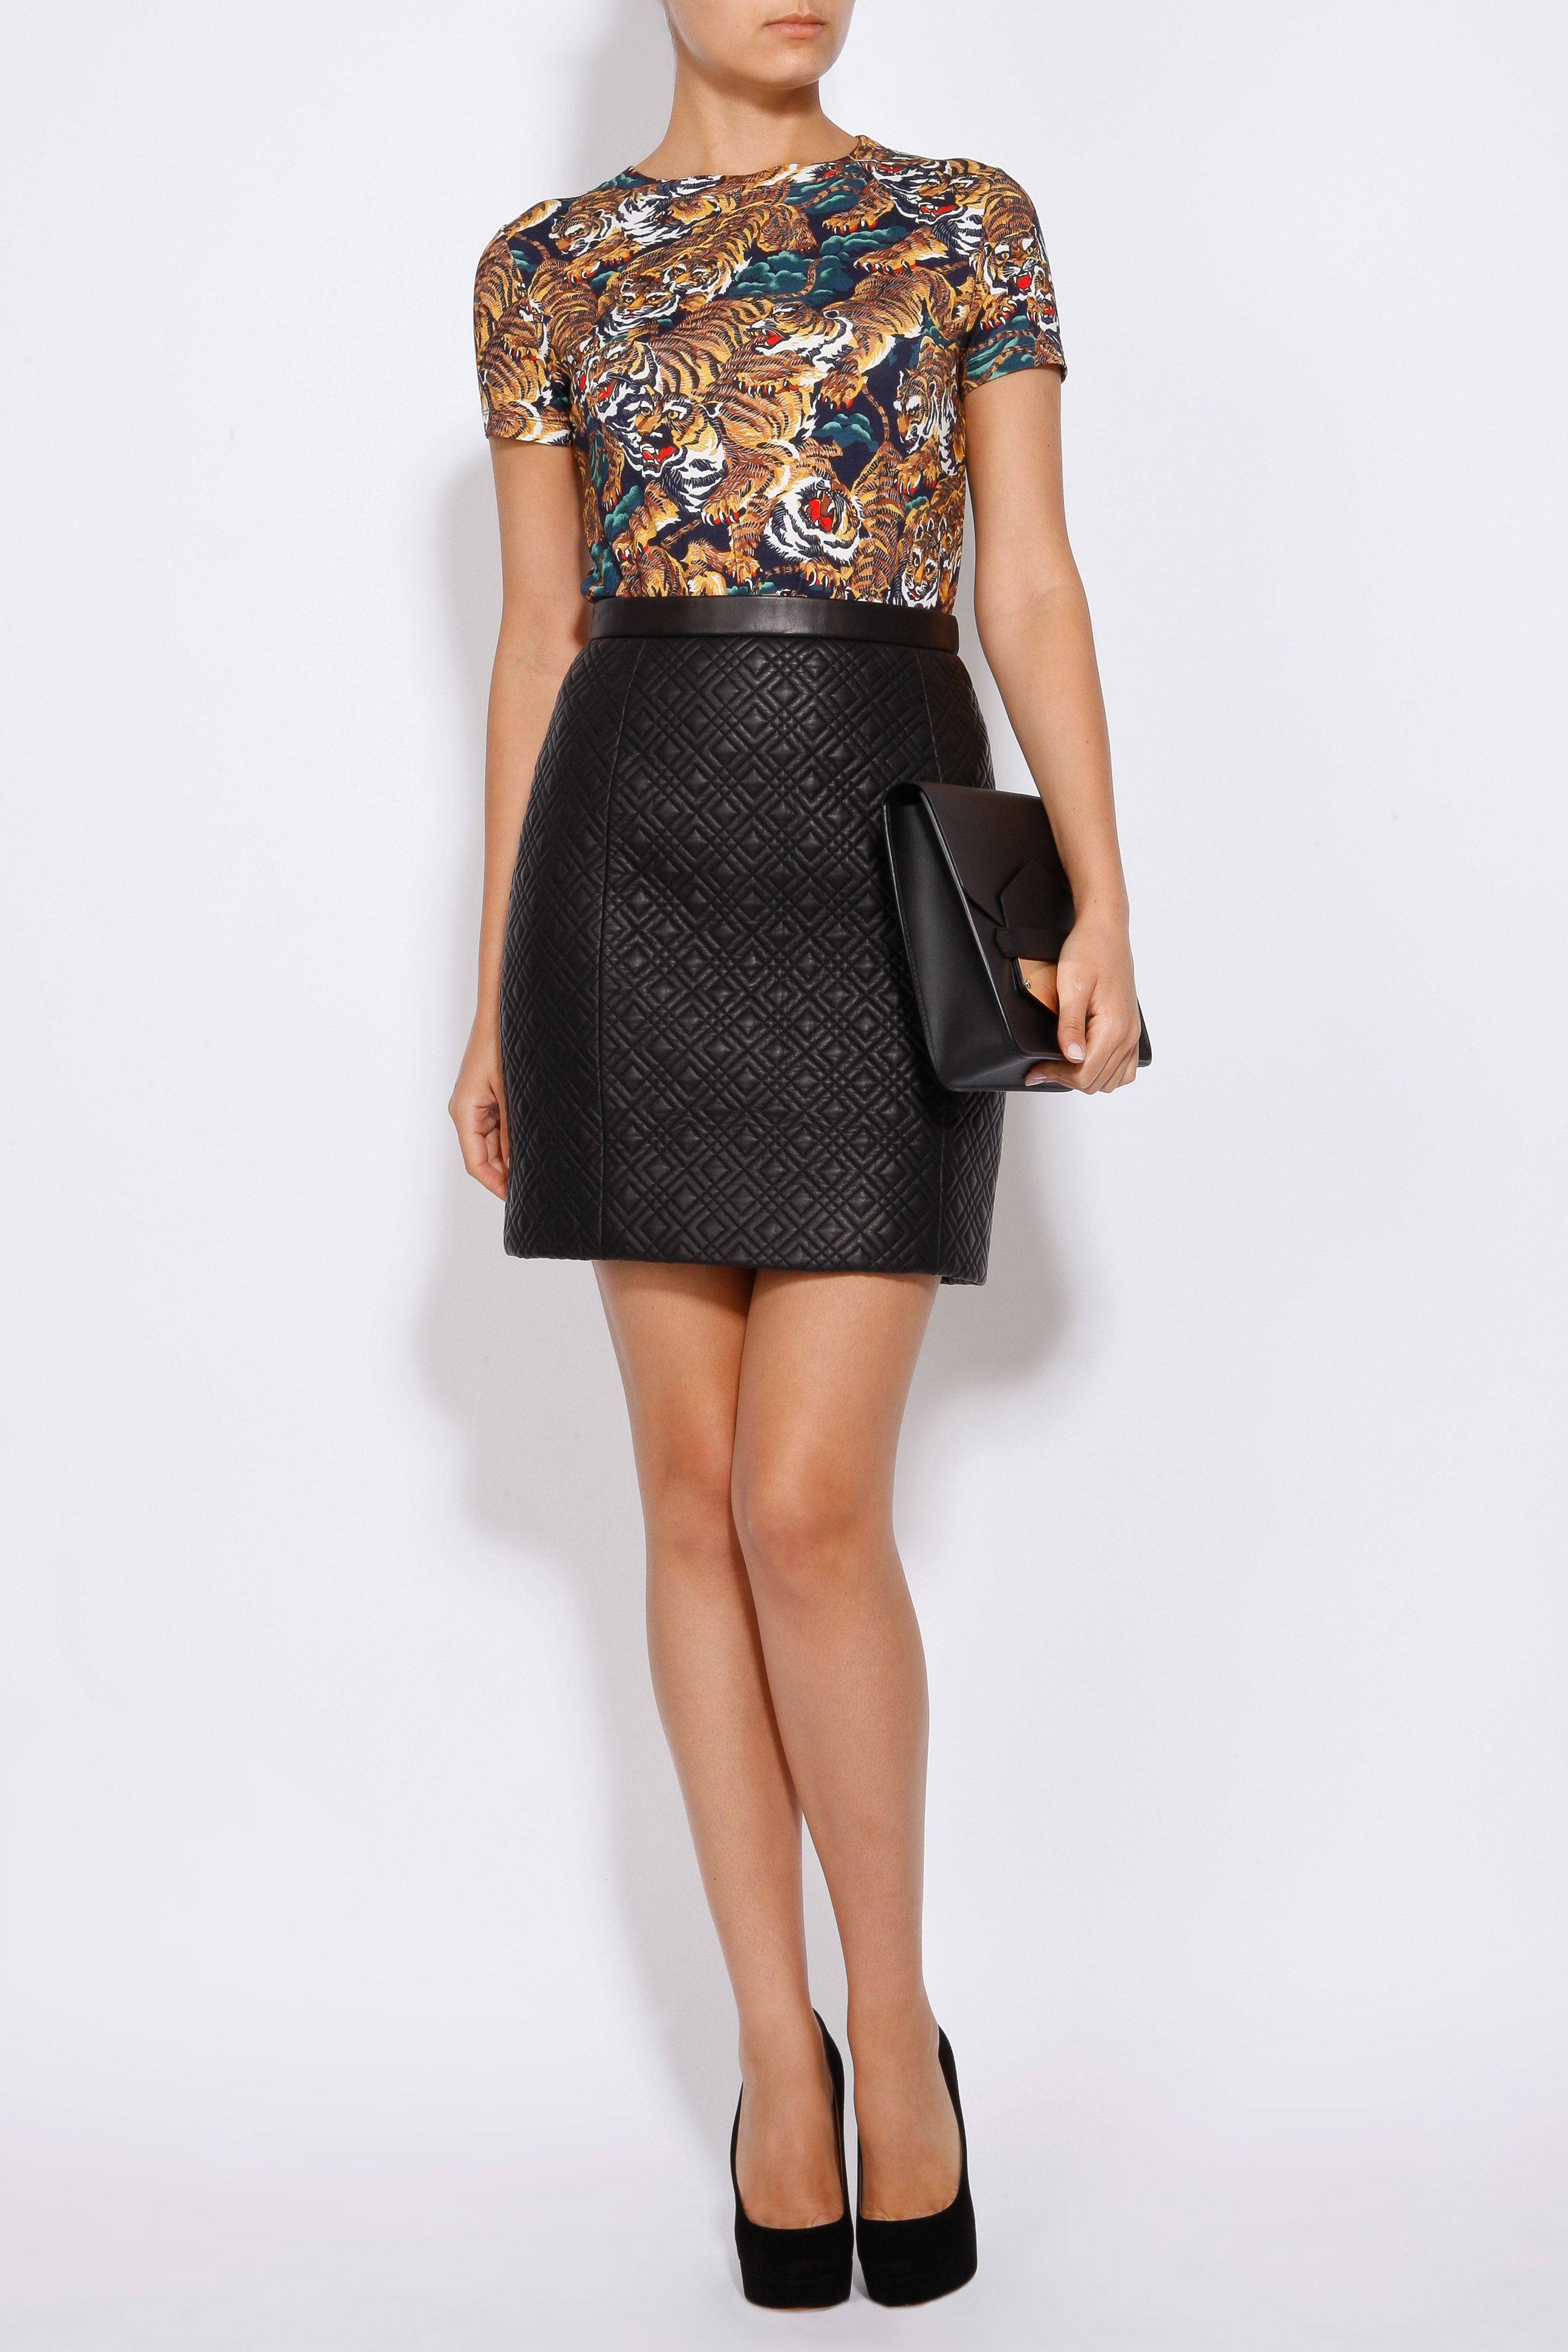 Jason wu Quilted Leather Skirt in Black | Lyst : quilted leather skirt - Adamdwight.com